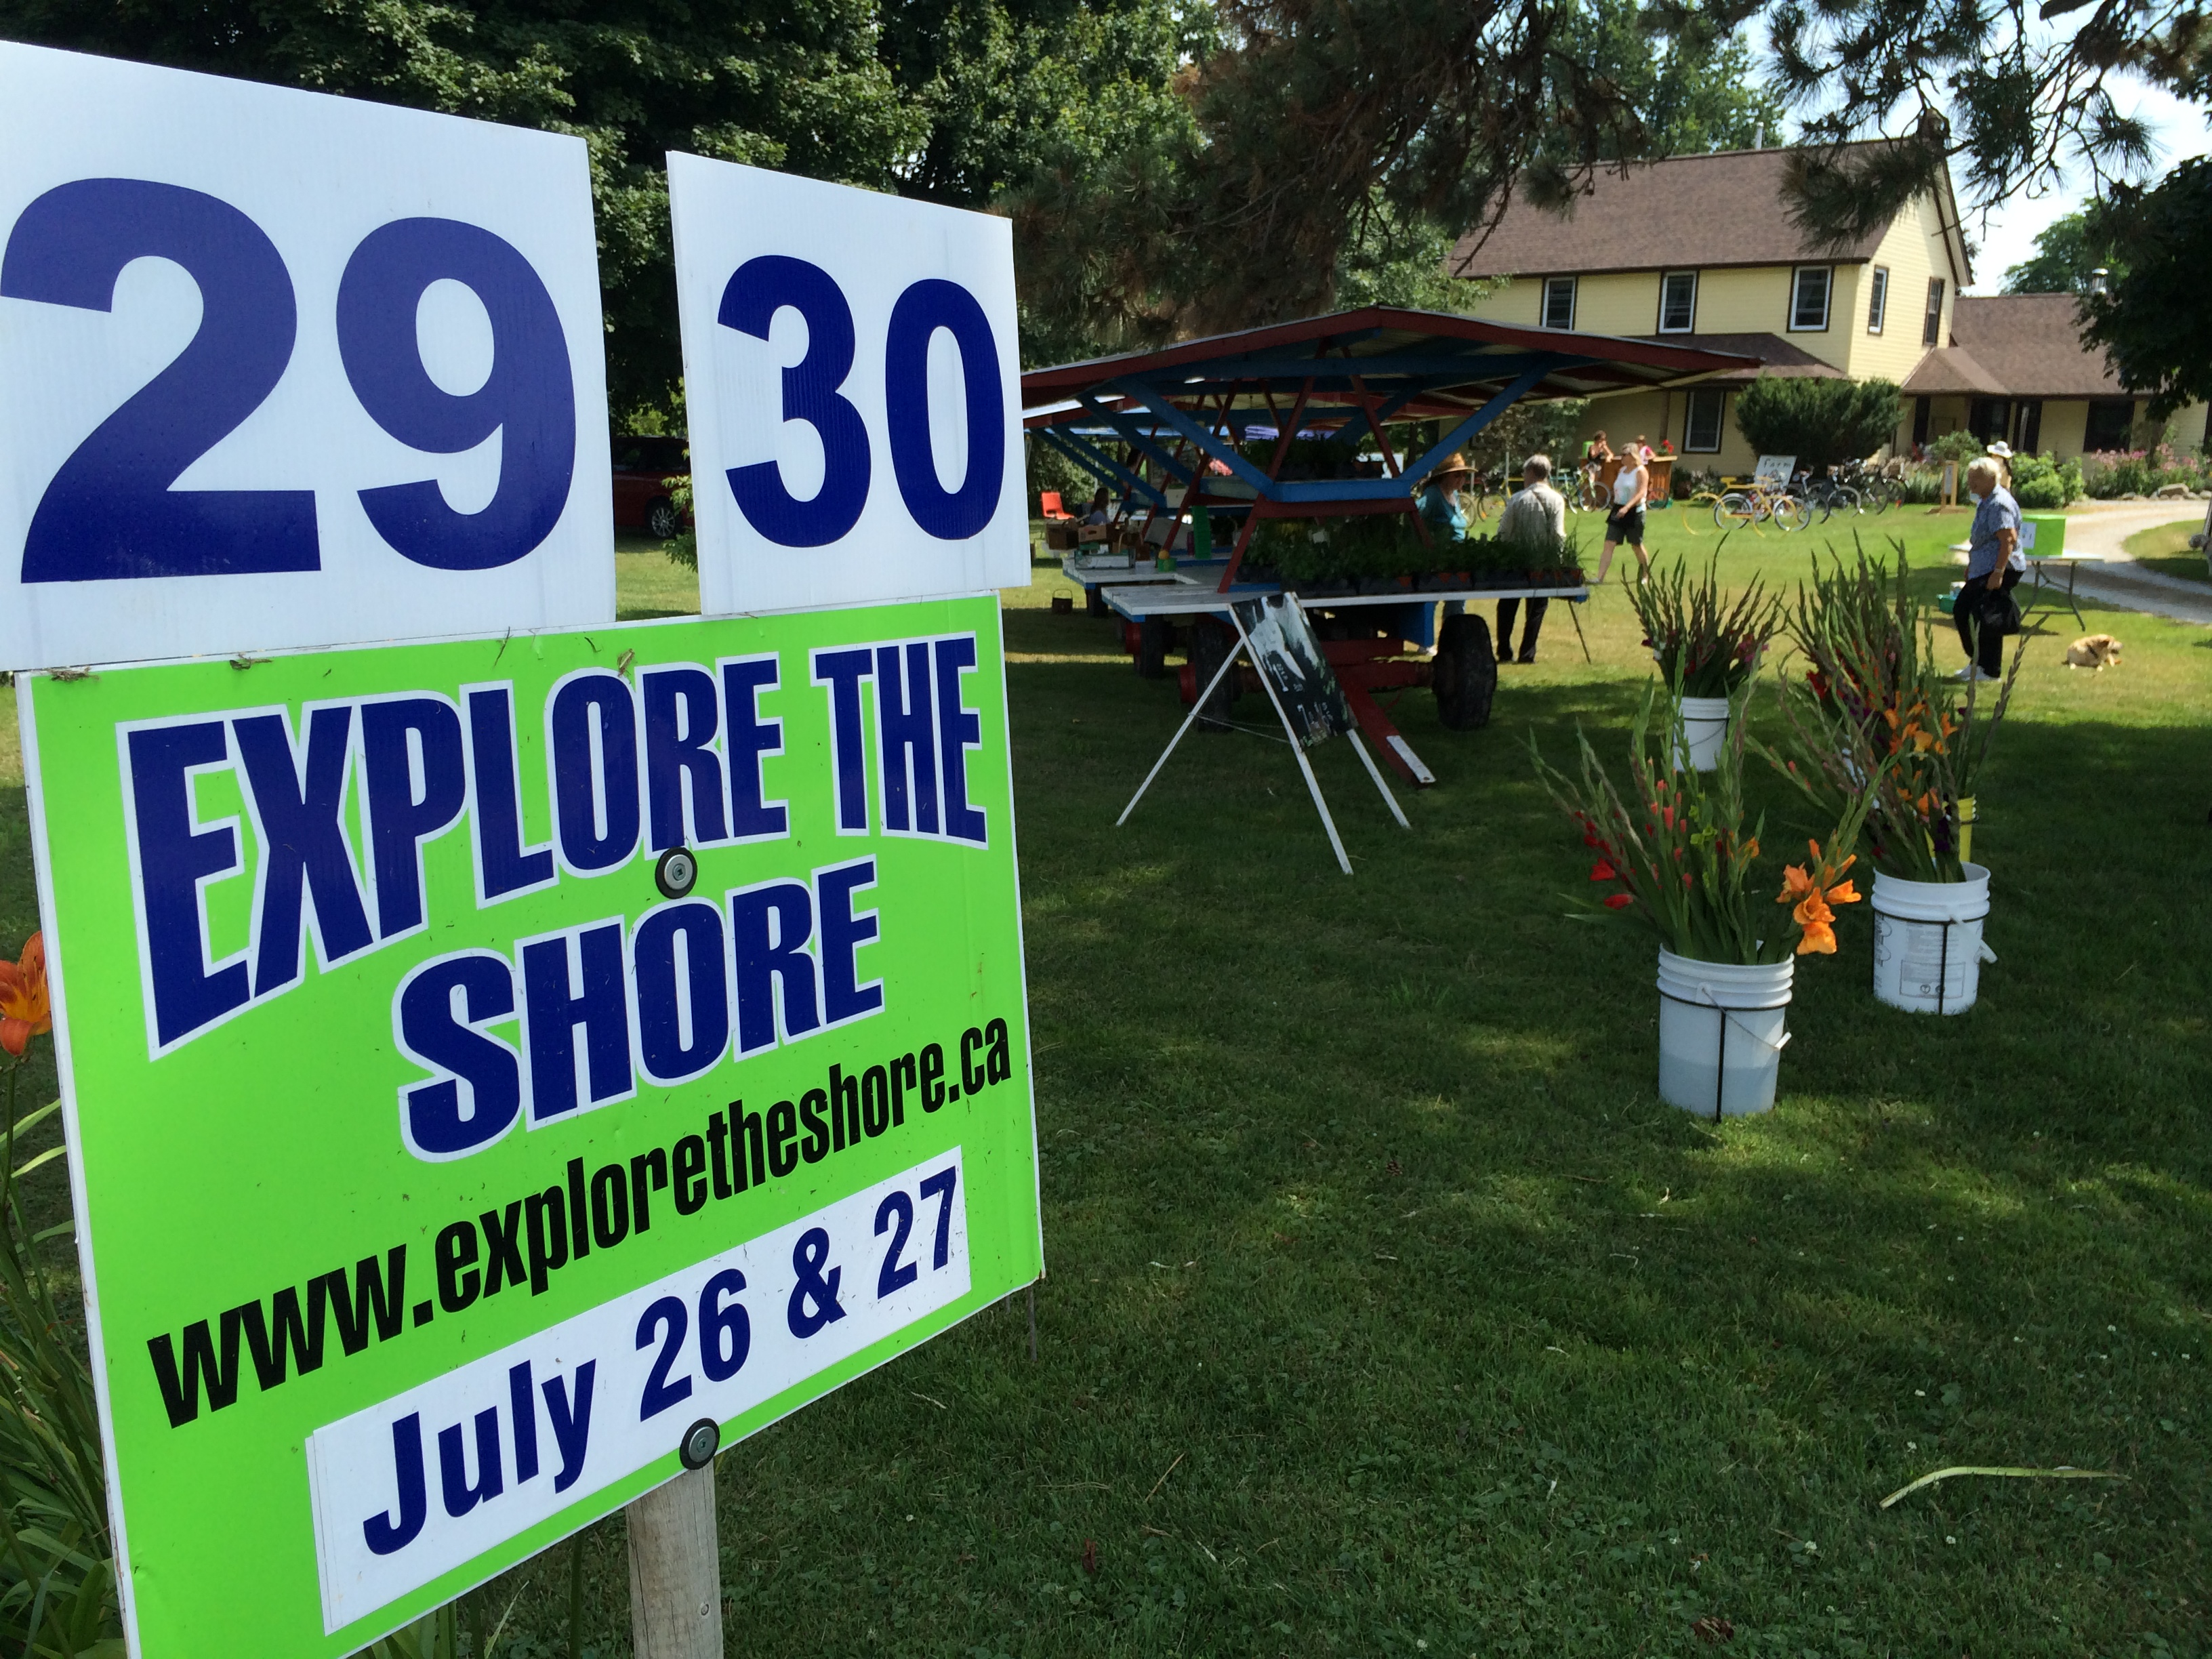 The Explore the Shore event, along County Rd. 50, is held for the fifth time in Essex. Photo taken July 26, 2014. (Photo by Ricardo Veneza)